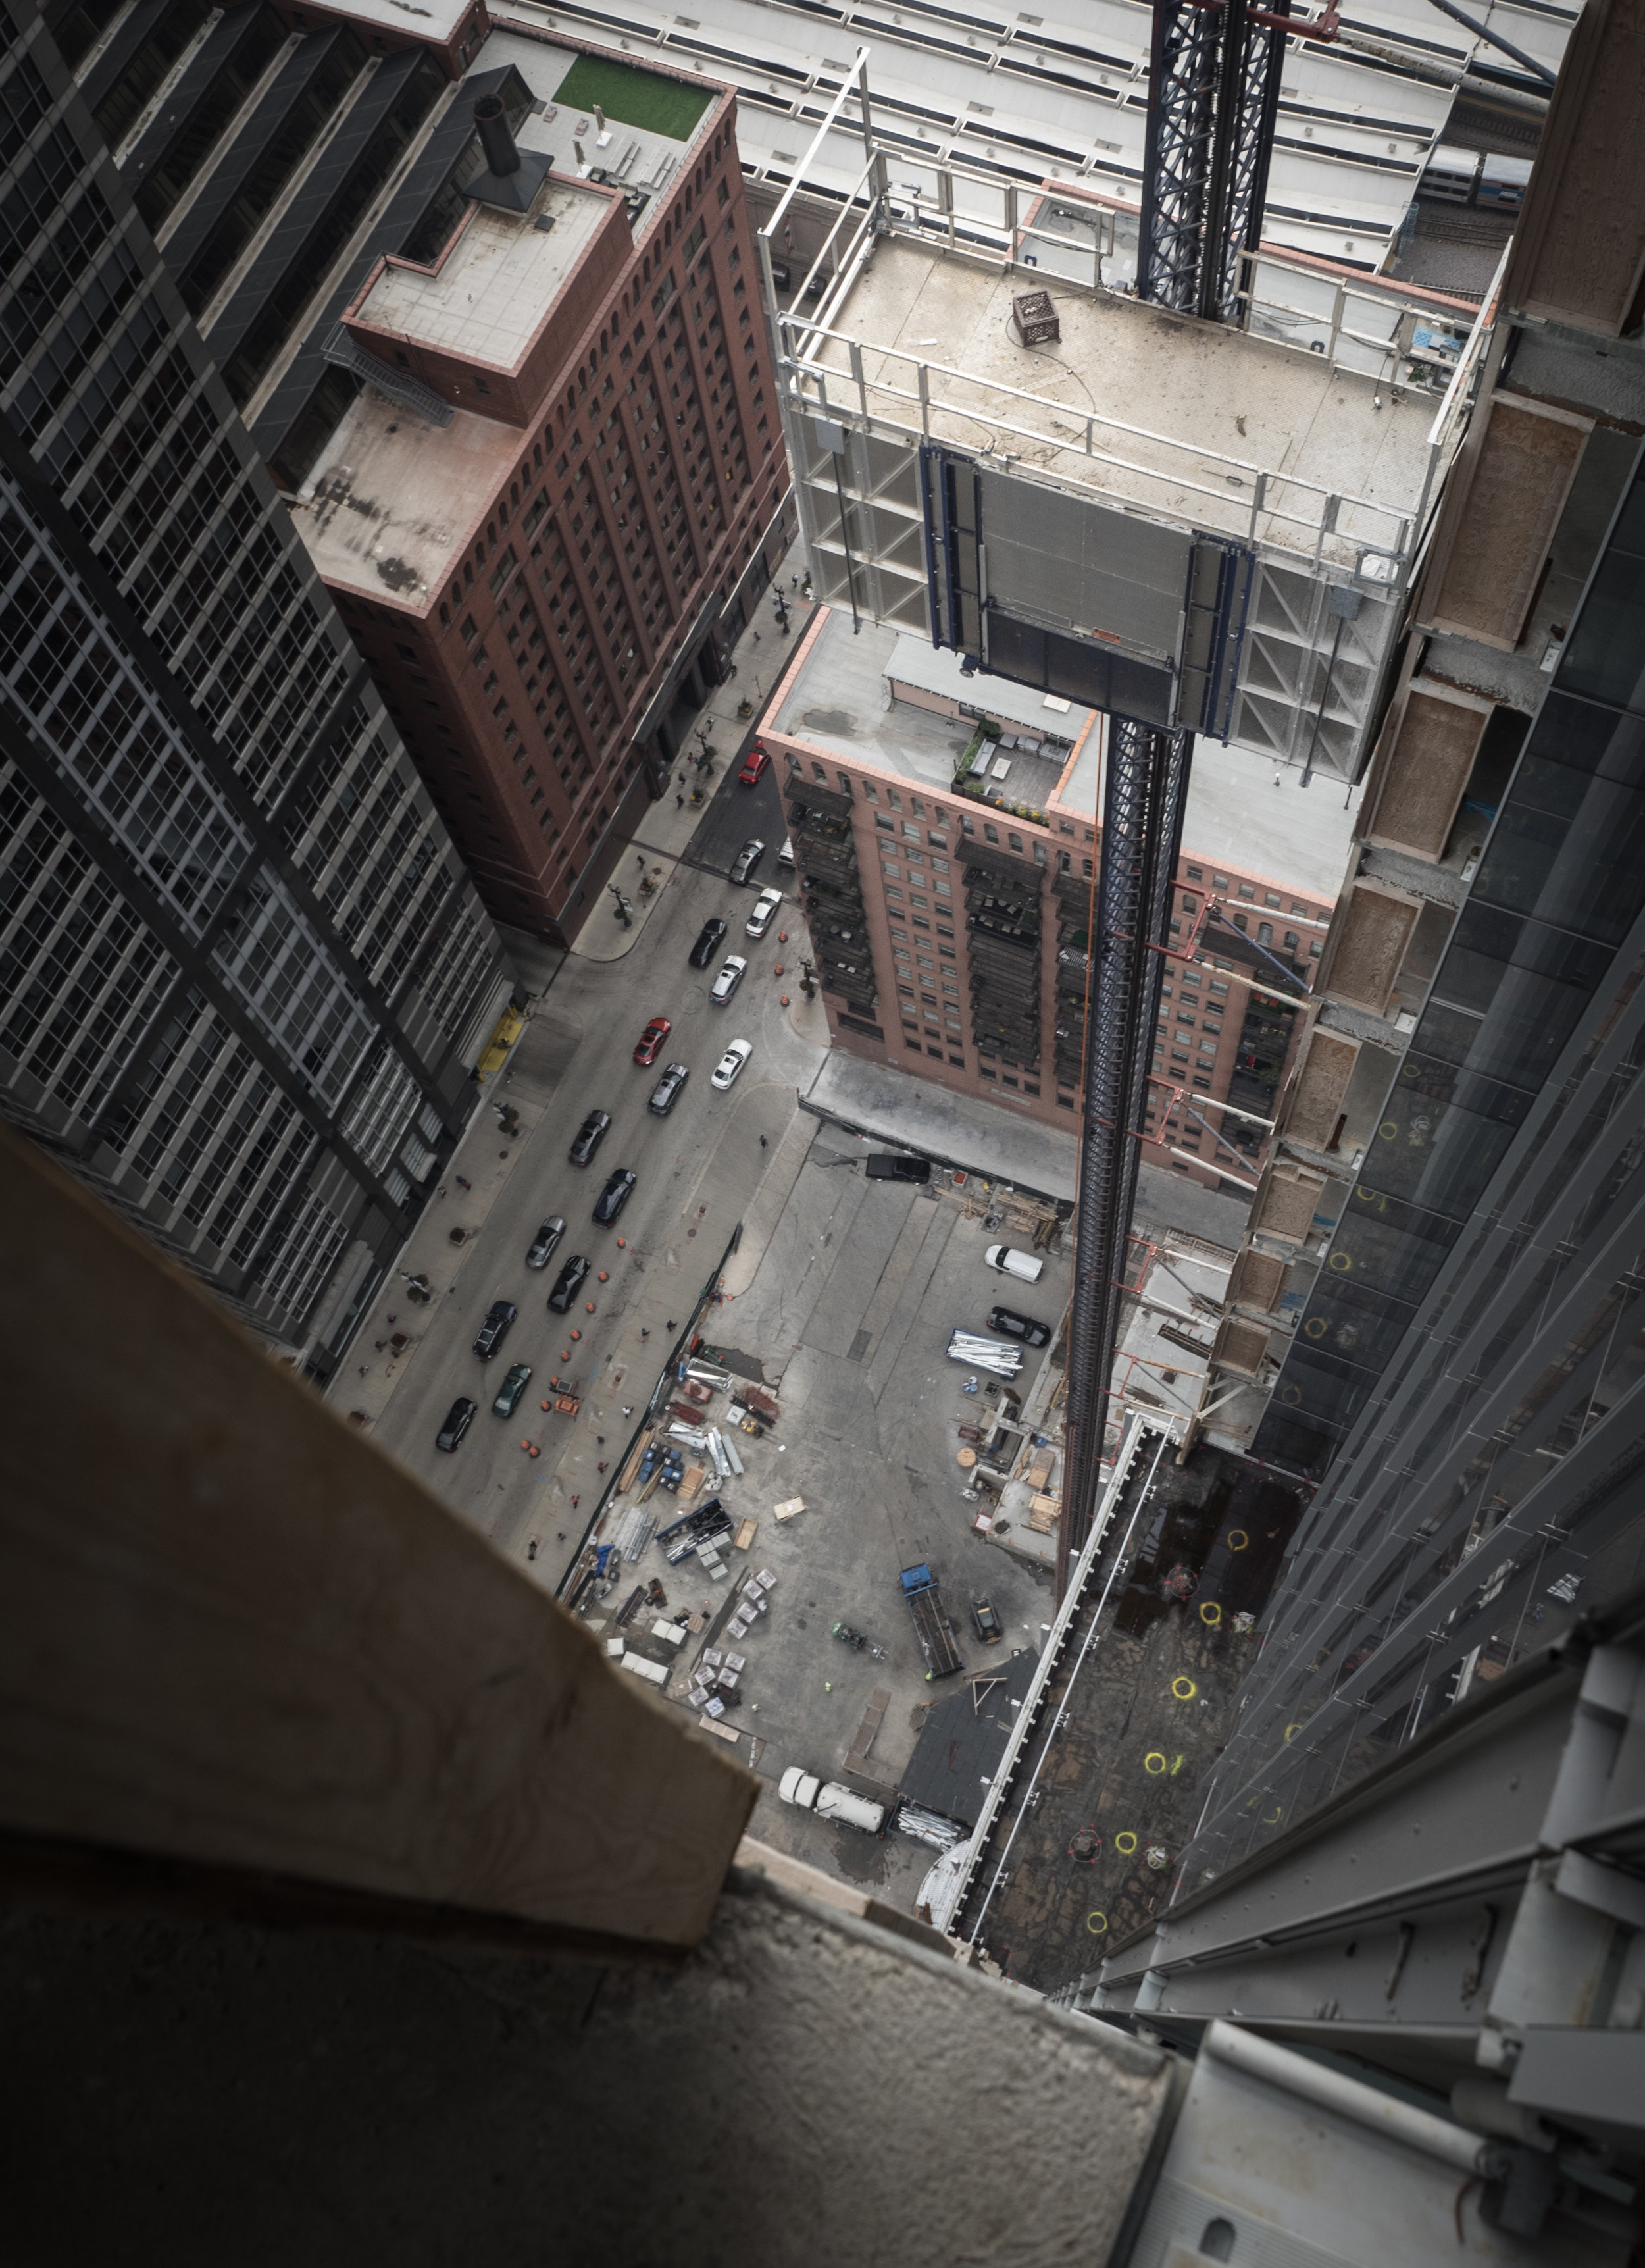 View from one of the openings